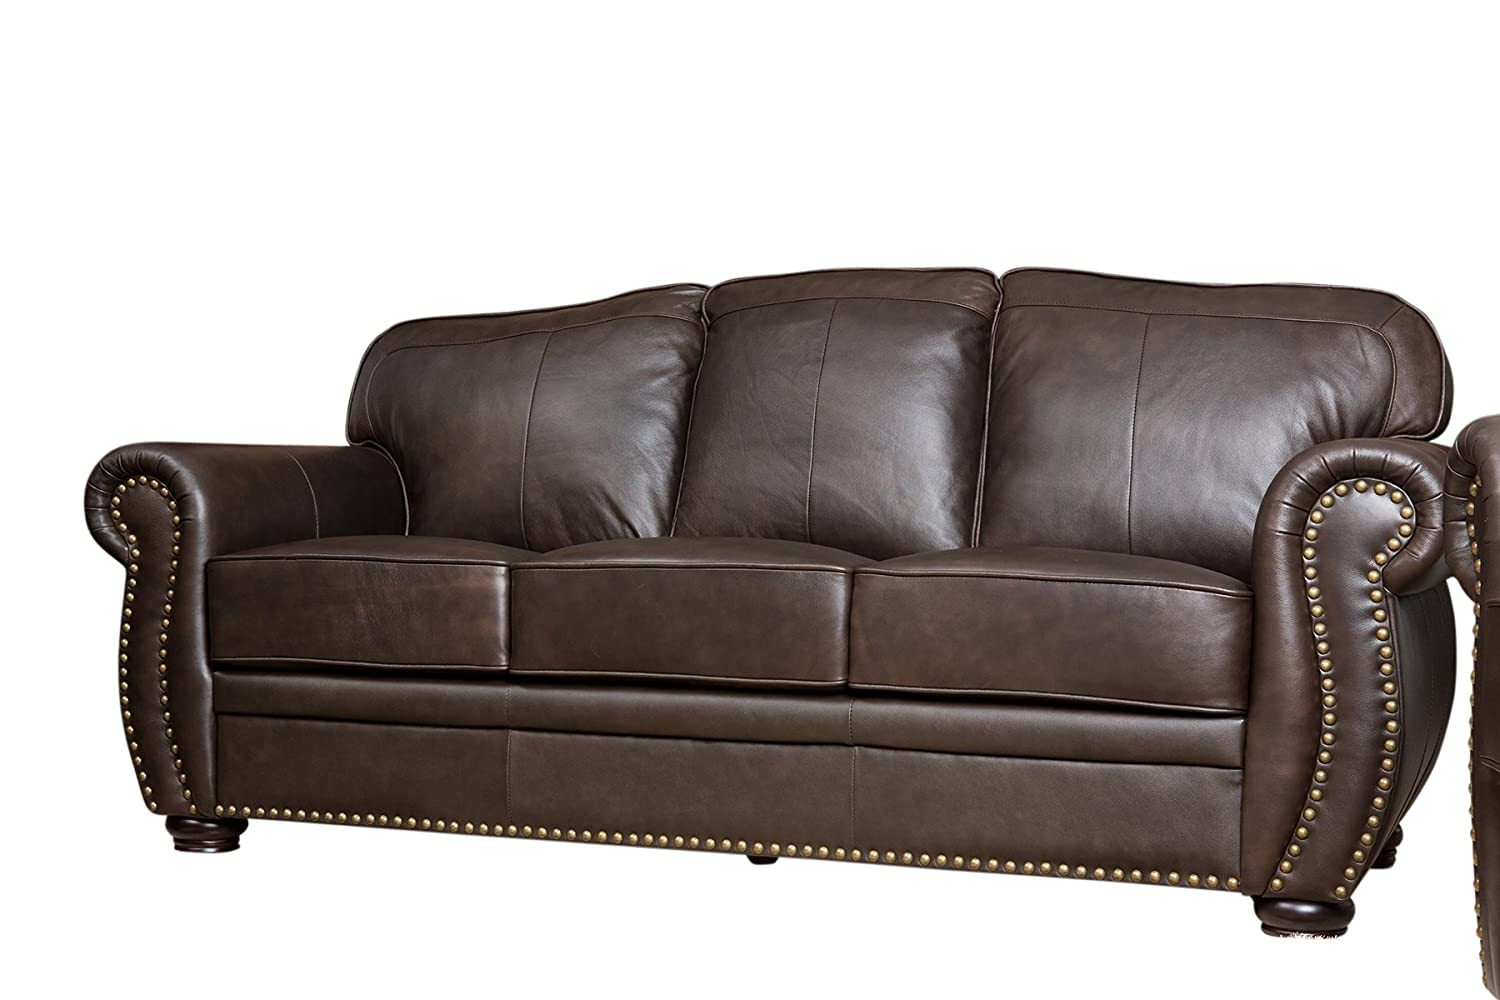 Amazon.com: Abbyson Palaza Leather Sofa, Brown: Home & Kitchen